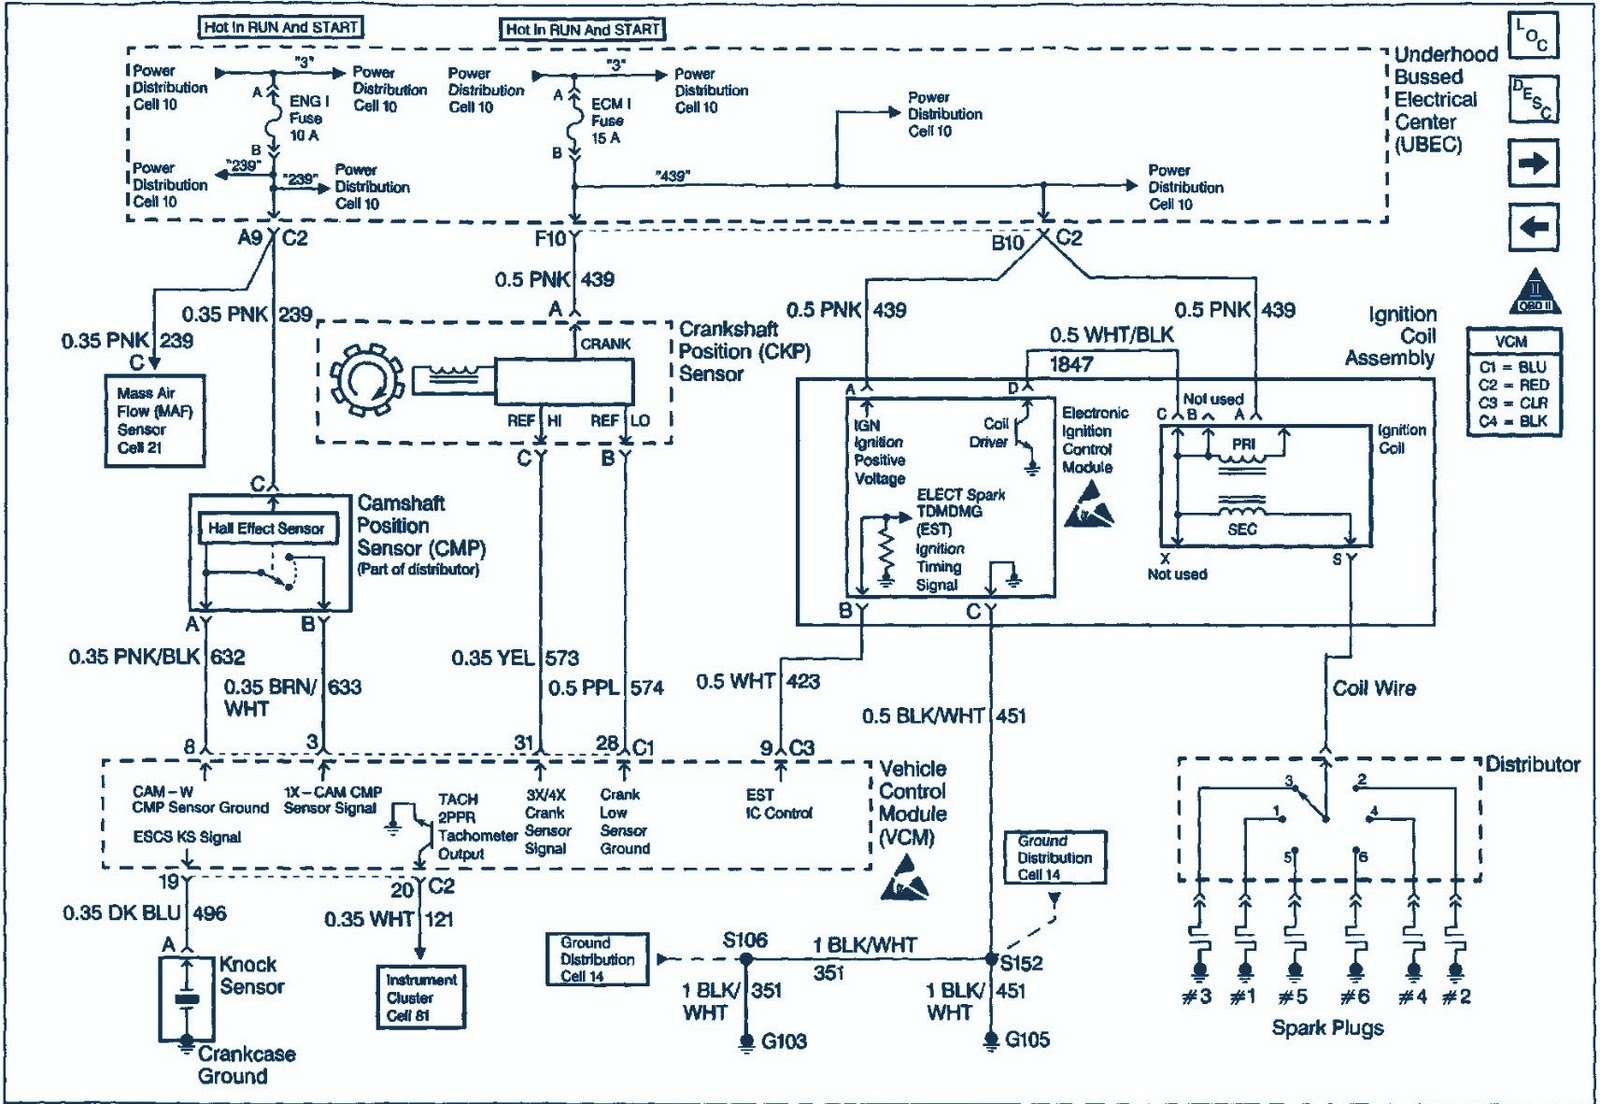 2000 gmc safari radio wiring diagram ryobi 790r fuel line jimmy questions took out cut wires that go